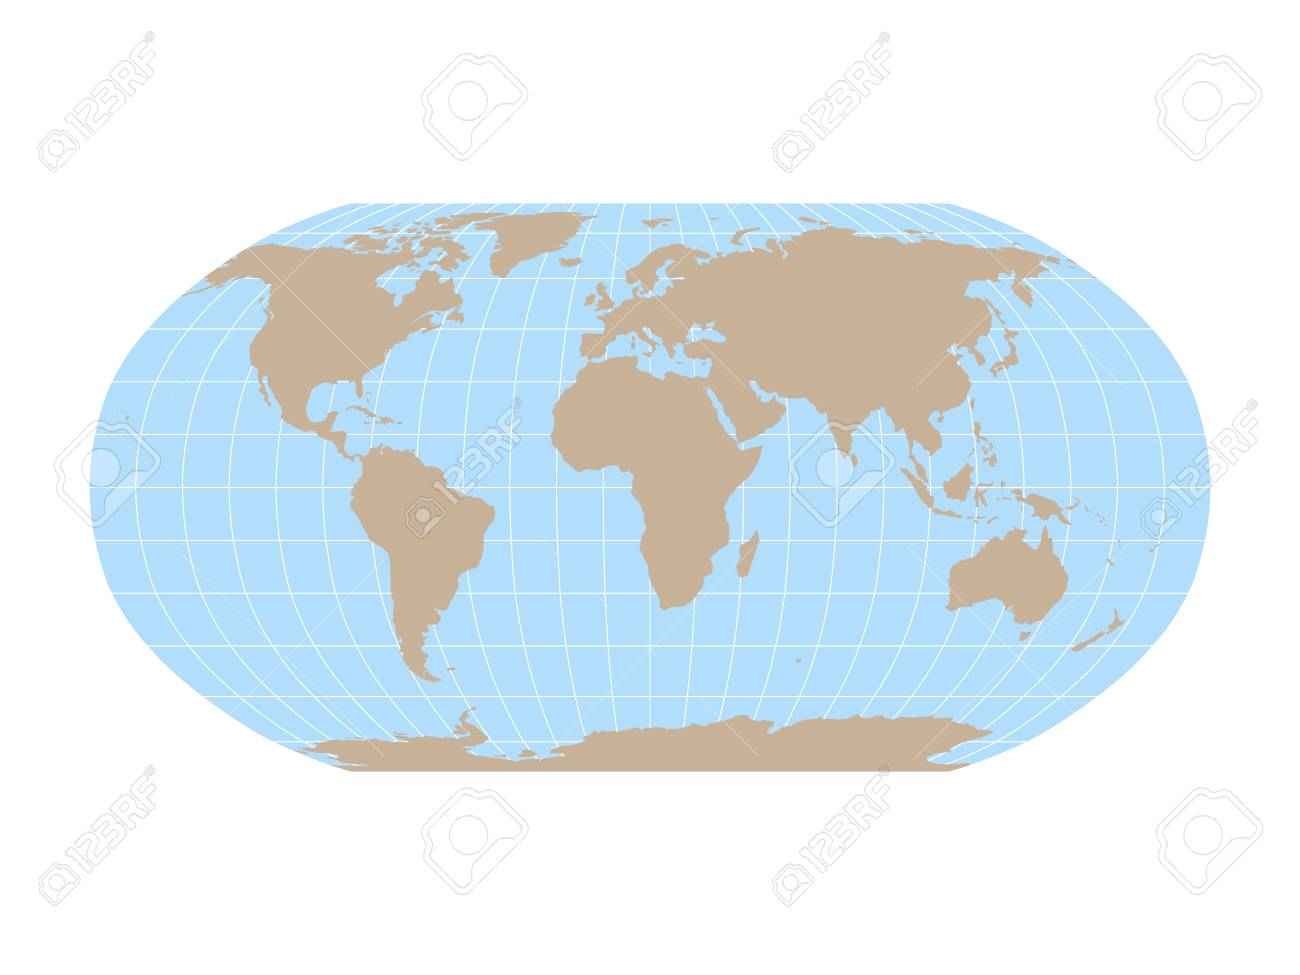 World Map in Robinson Projection with meridians and parallels.. on imb world map, cn world map, uk world map, nj world map, dd world map, arizona world map, ne world map, ph world map, usvi world map, ca world map, un world map, aa world map, ap world map, kh world map, ae world map, dc world map, old world map, sc world map,